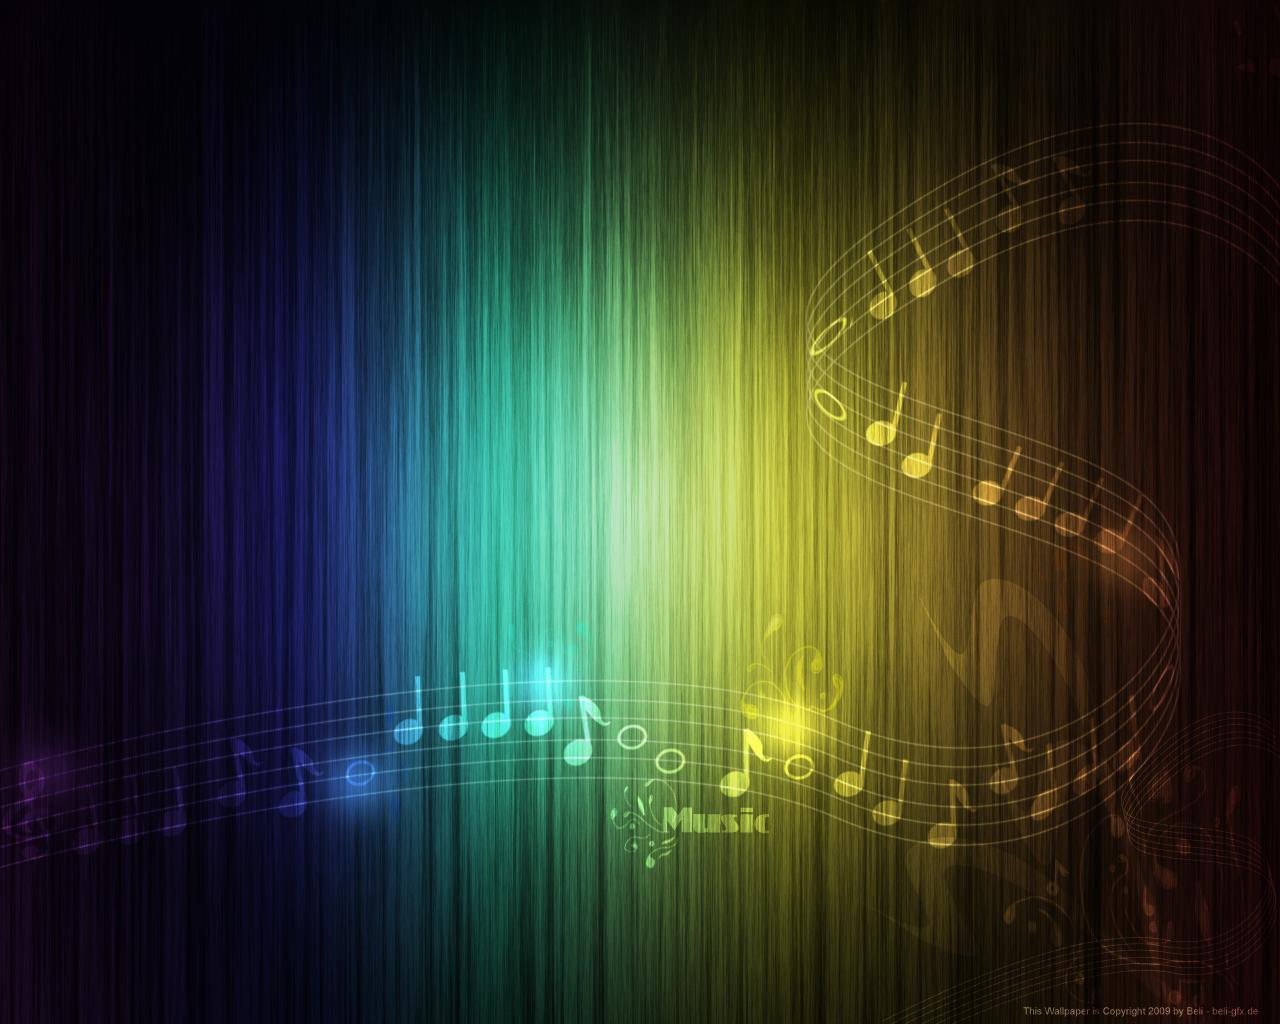 Musical Note Wallpapers - Wallpaper Cave